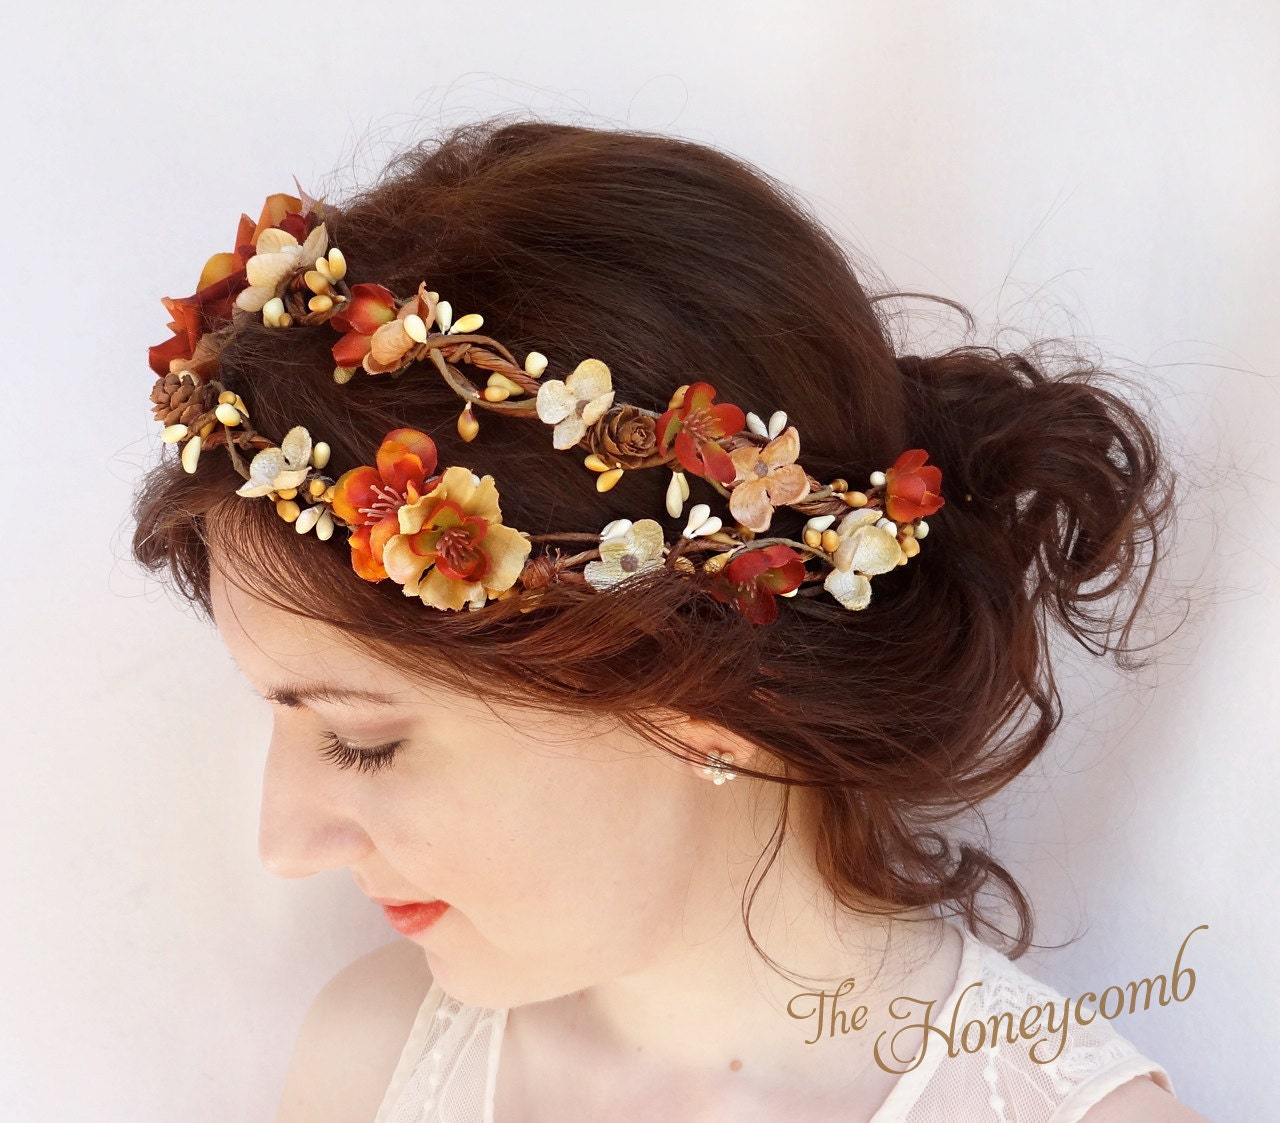 Fall Wedding Hairstyles With Flower Crown: Fall Wedding Headpiece Fall Flower Crown Rustic By